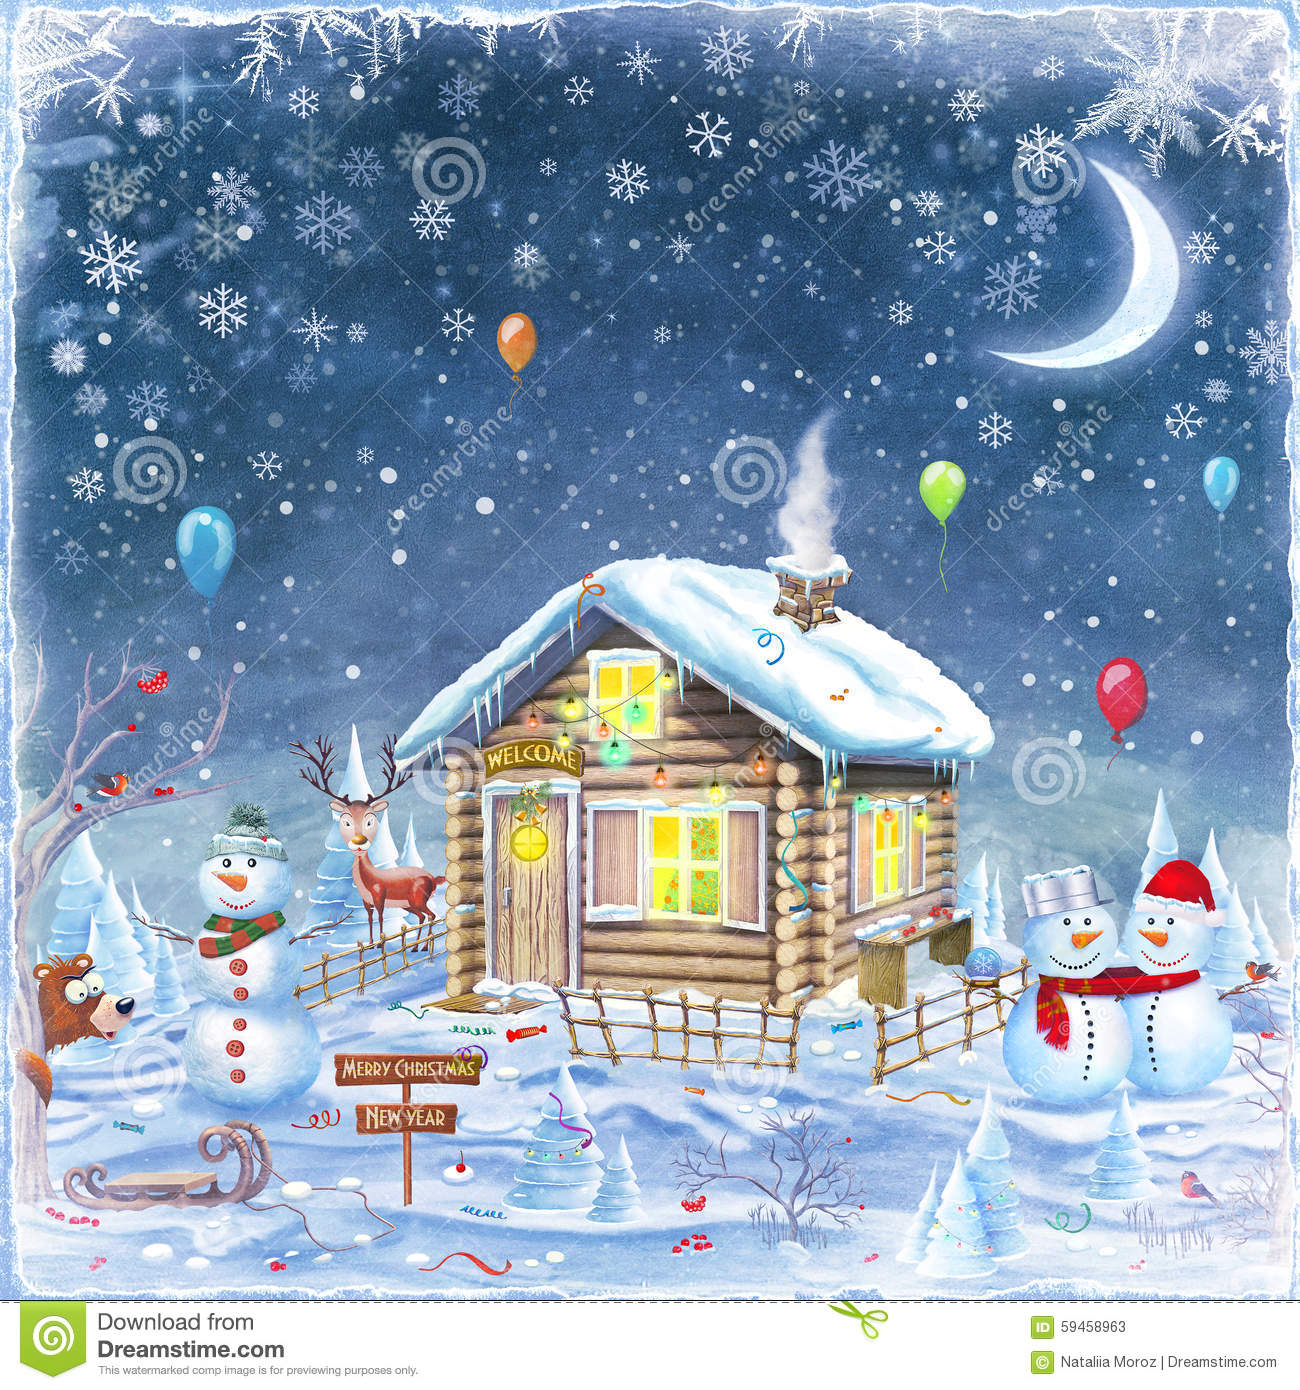 a happy christmas time at grandmas house To grandma's house we go heigh ho, heigh ho, heigh ho we're on our way with horse and sleigh through fluffy drifts of snow oh, what a trip to take.